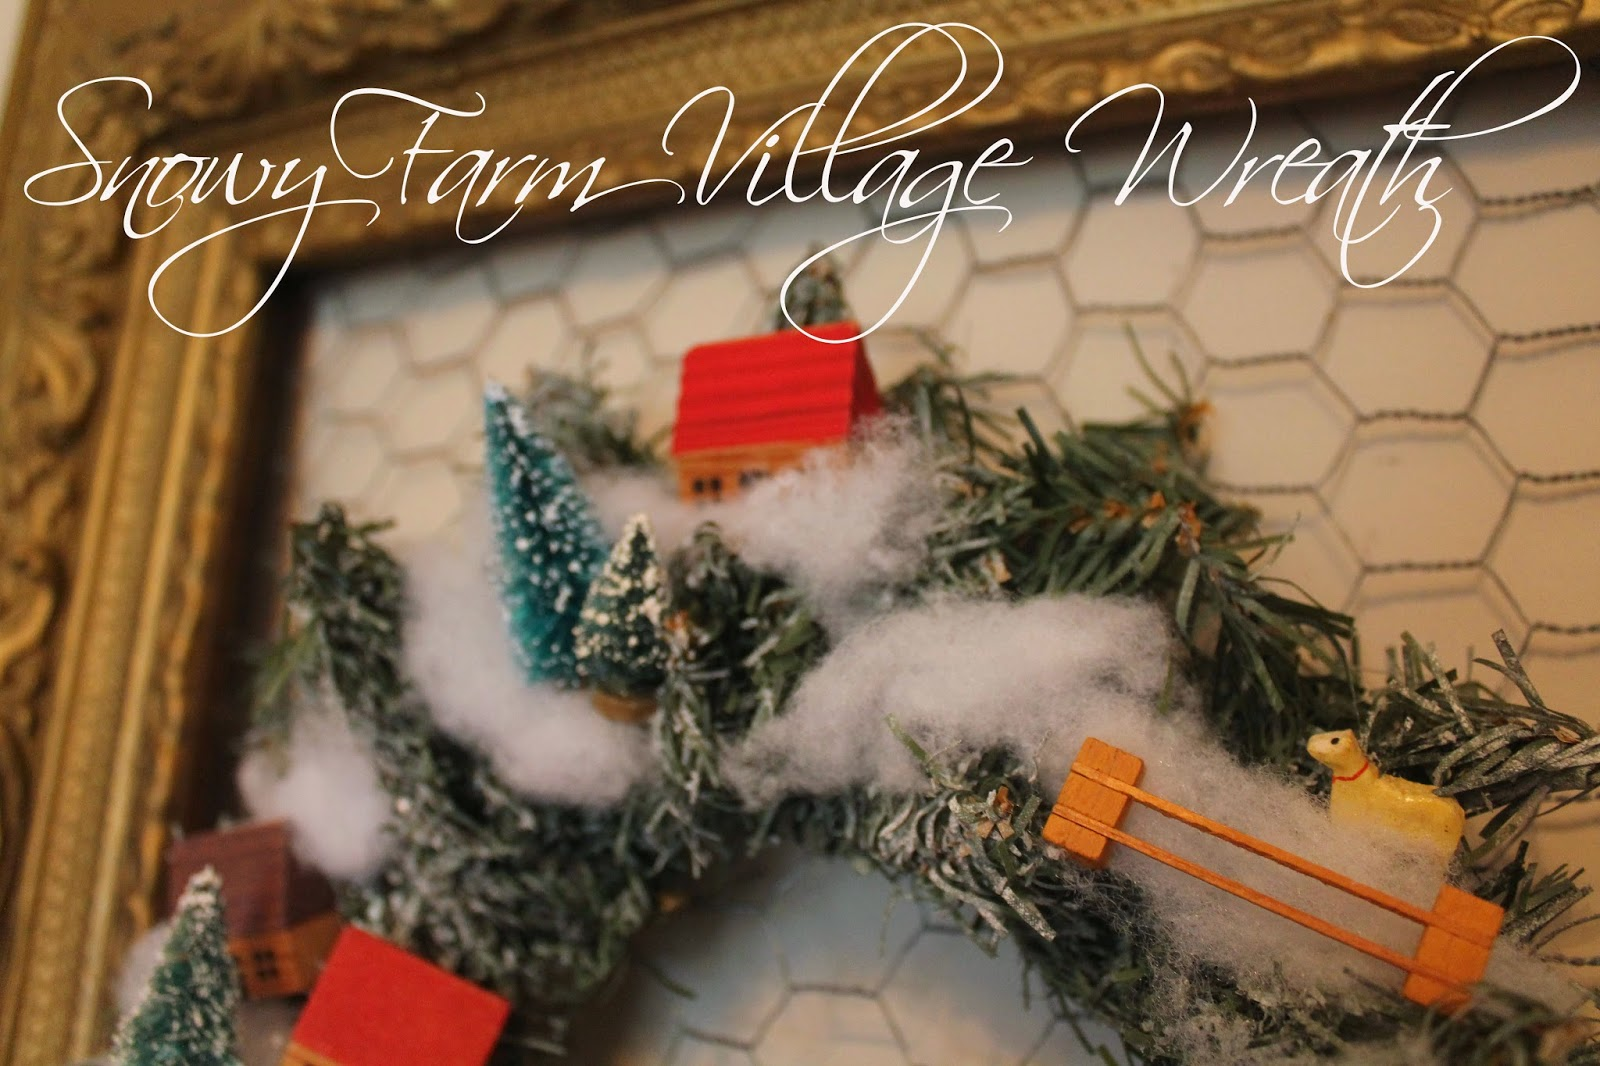 amazing diy snow village wreath, the altered past blog